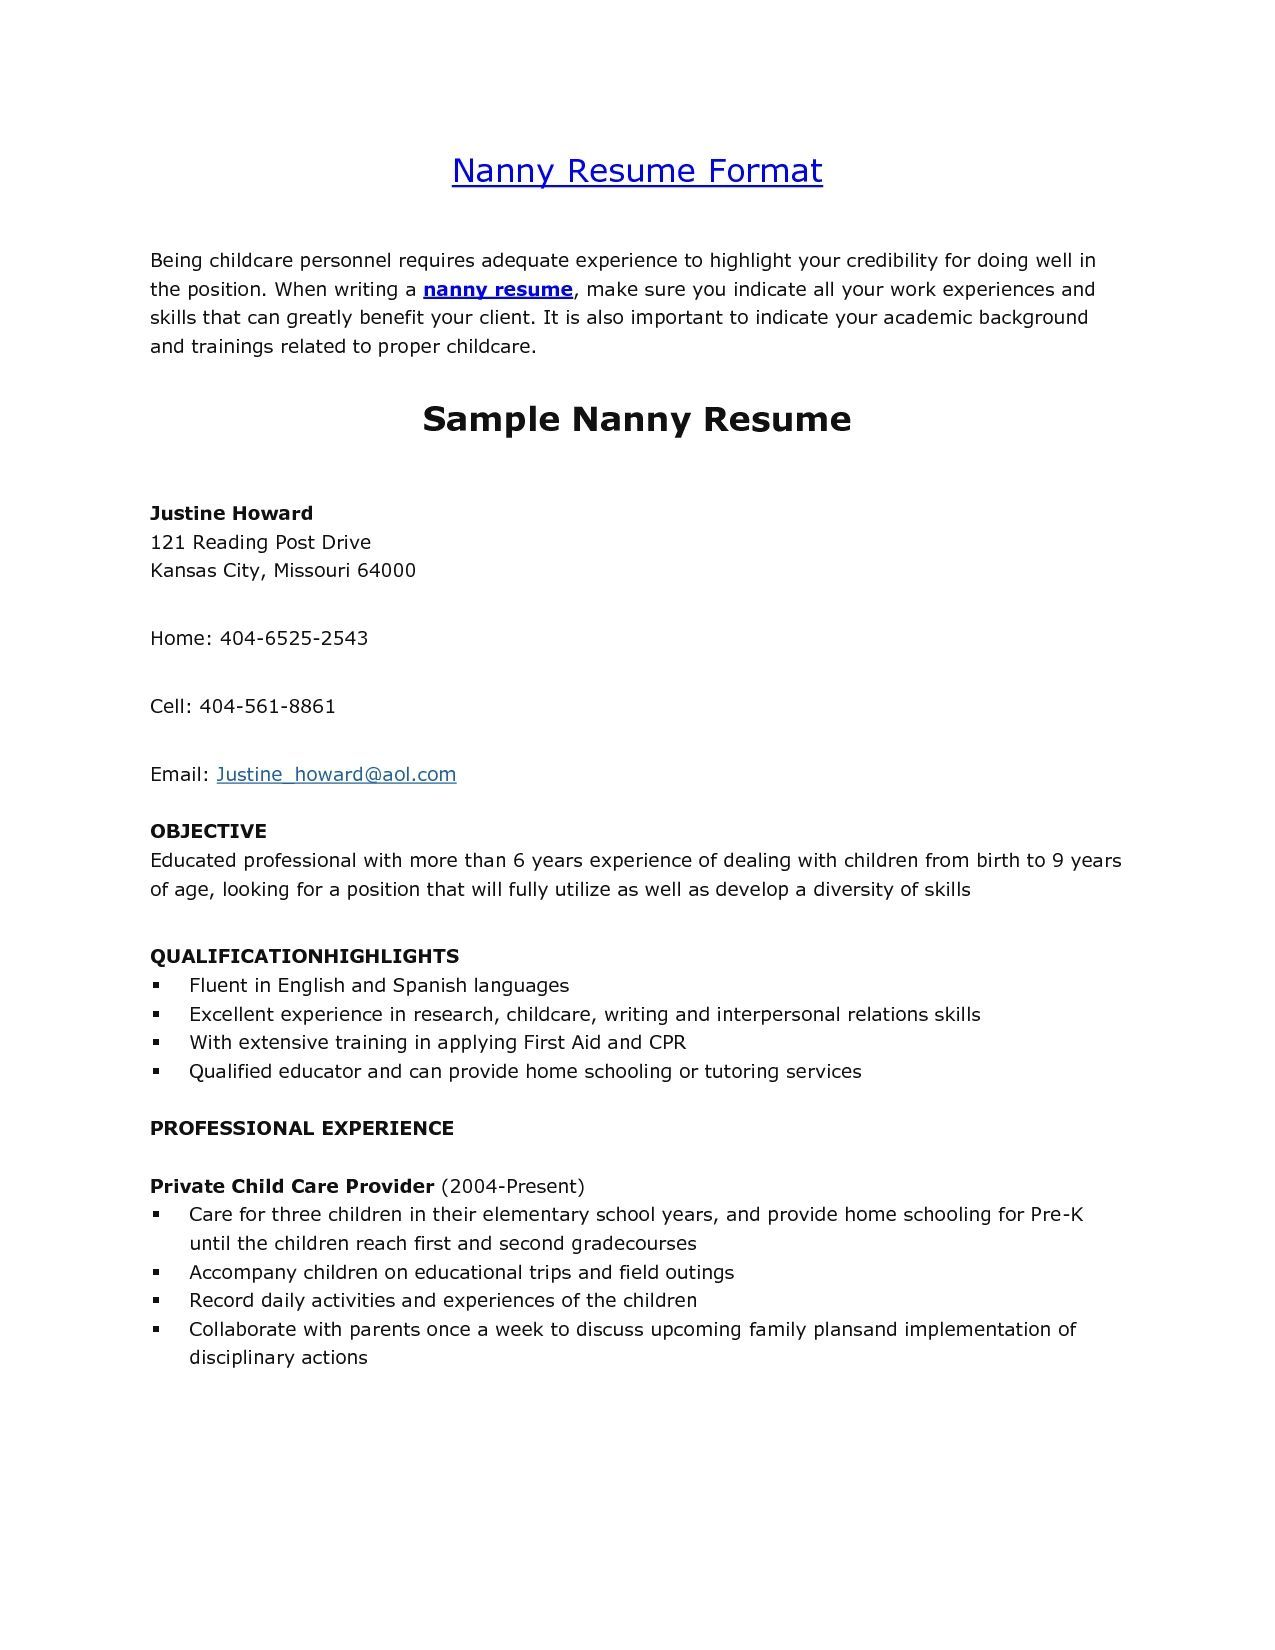 Online Job resume samples, Resume examples, Job resume